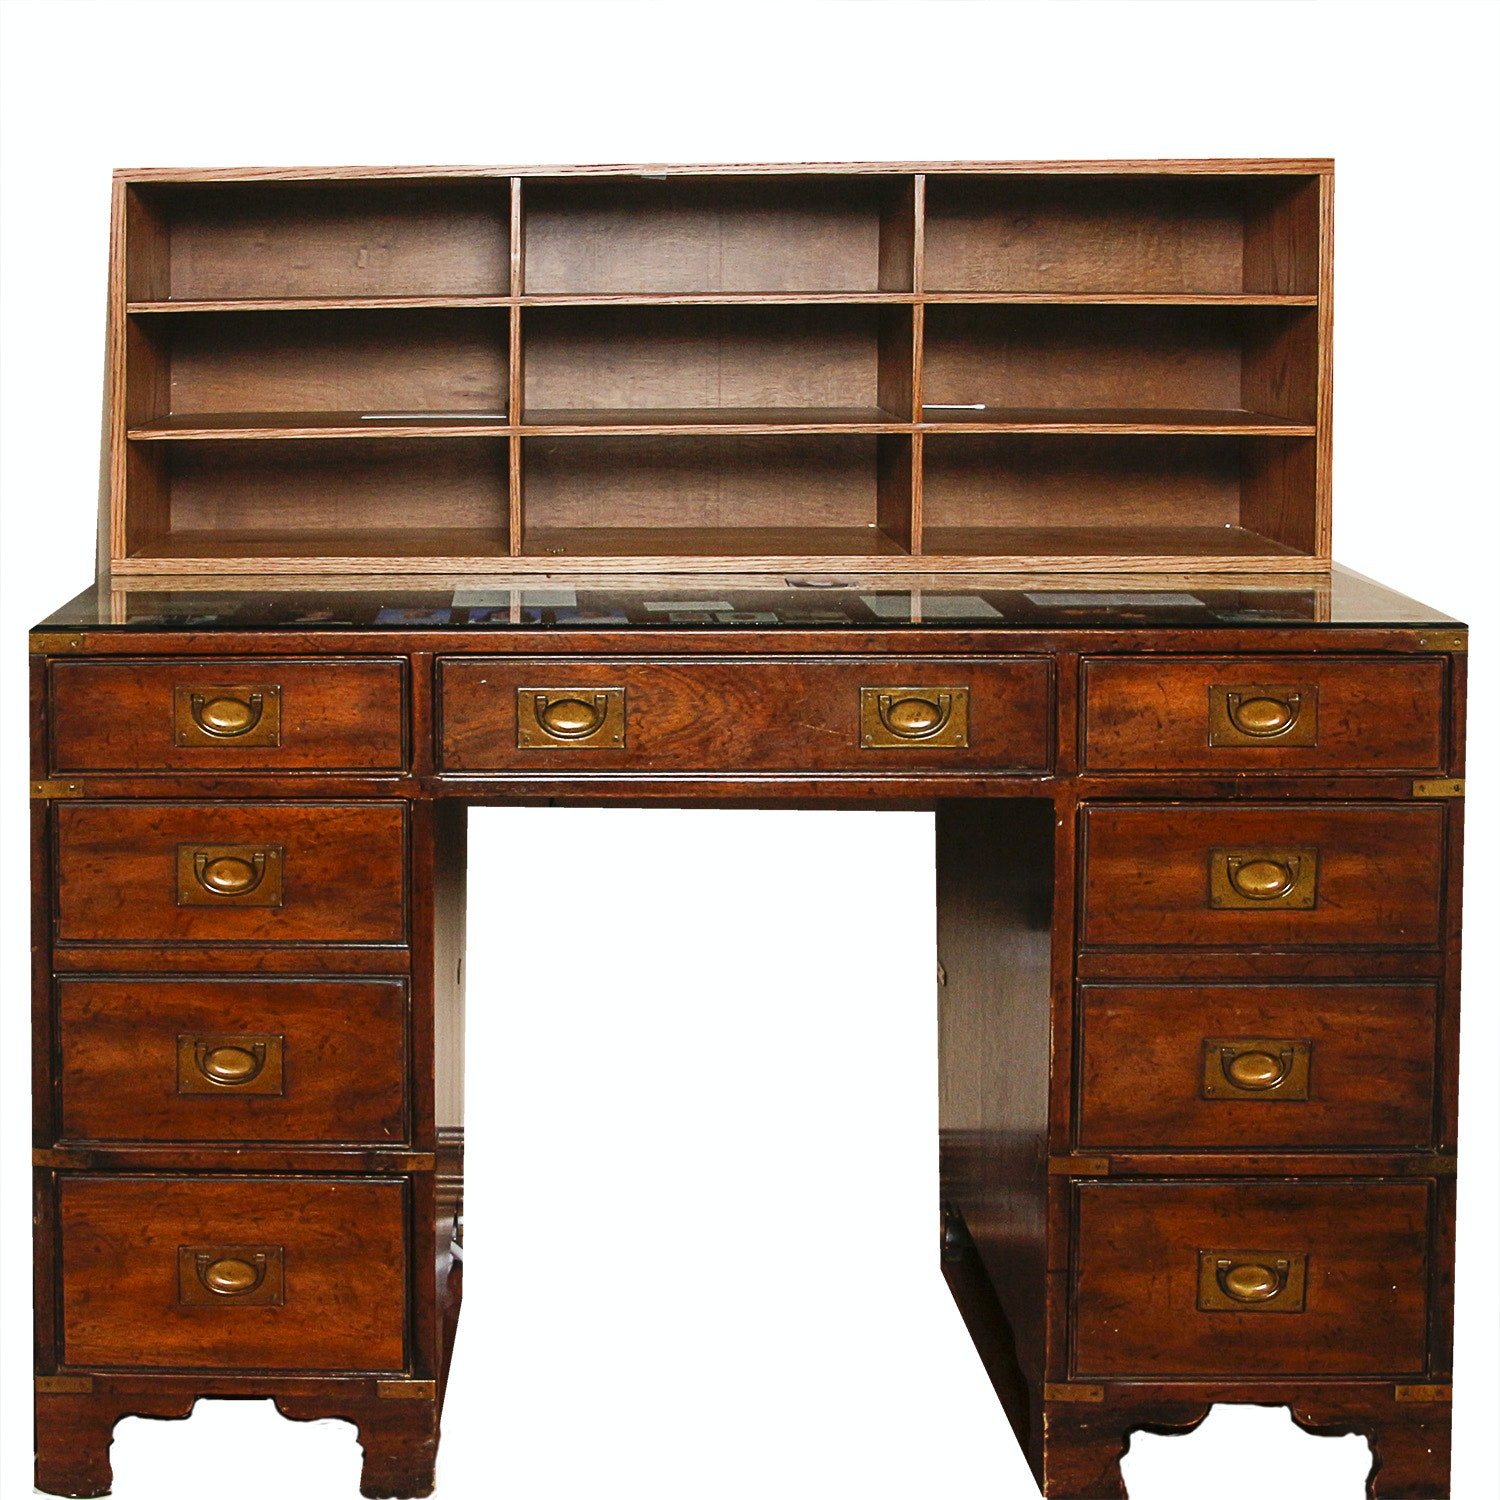 Vintage Campaign Style Kneehole Desk by Heritage with Oak Shelving Unit